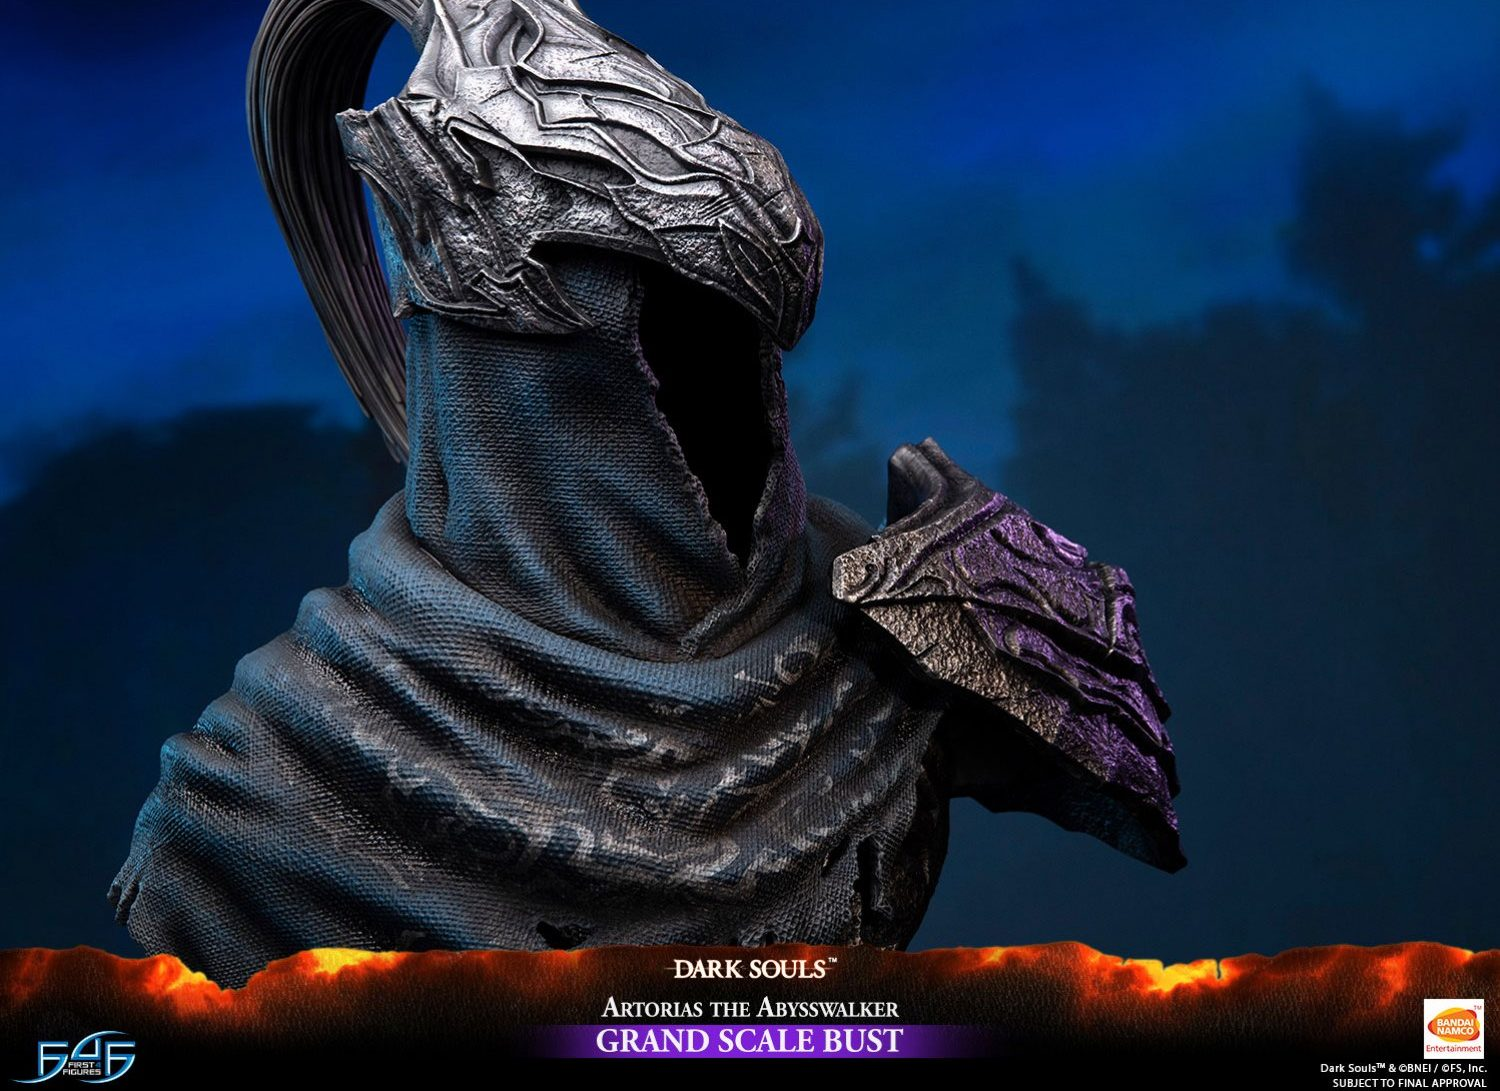 This Awesome Dark Souls Statue Is Now Available for Pre Order